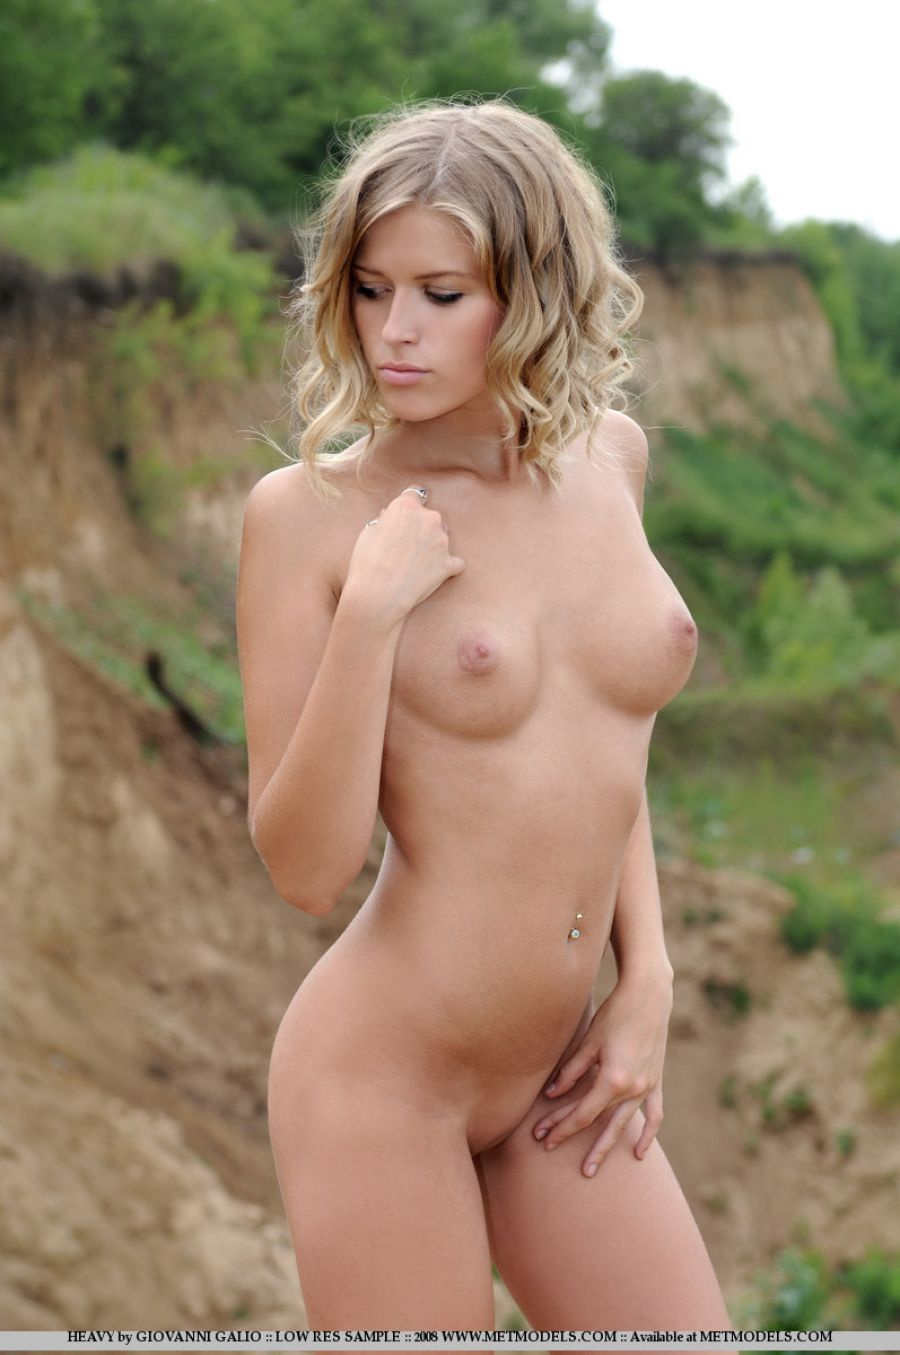 Topic, Photography nudist image all